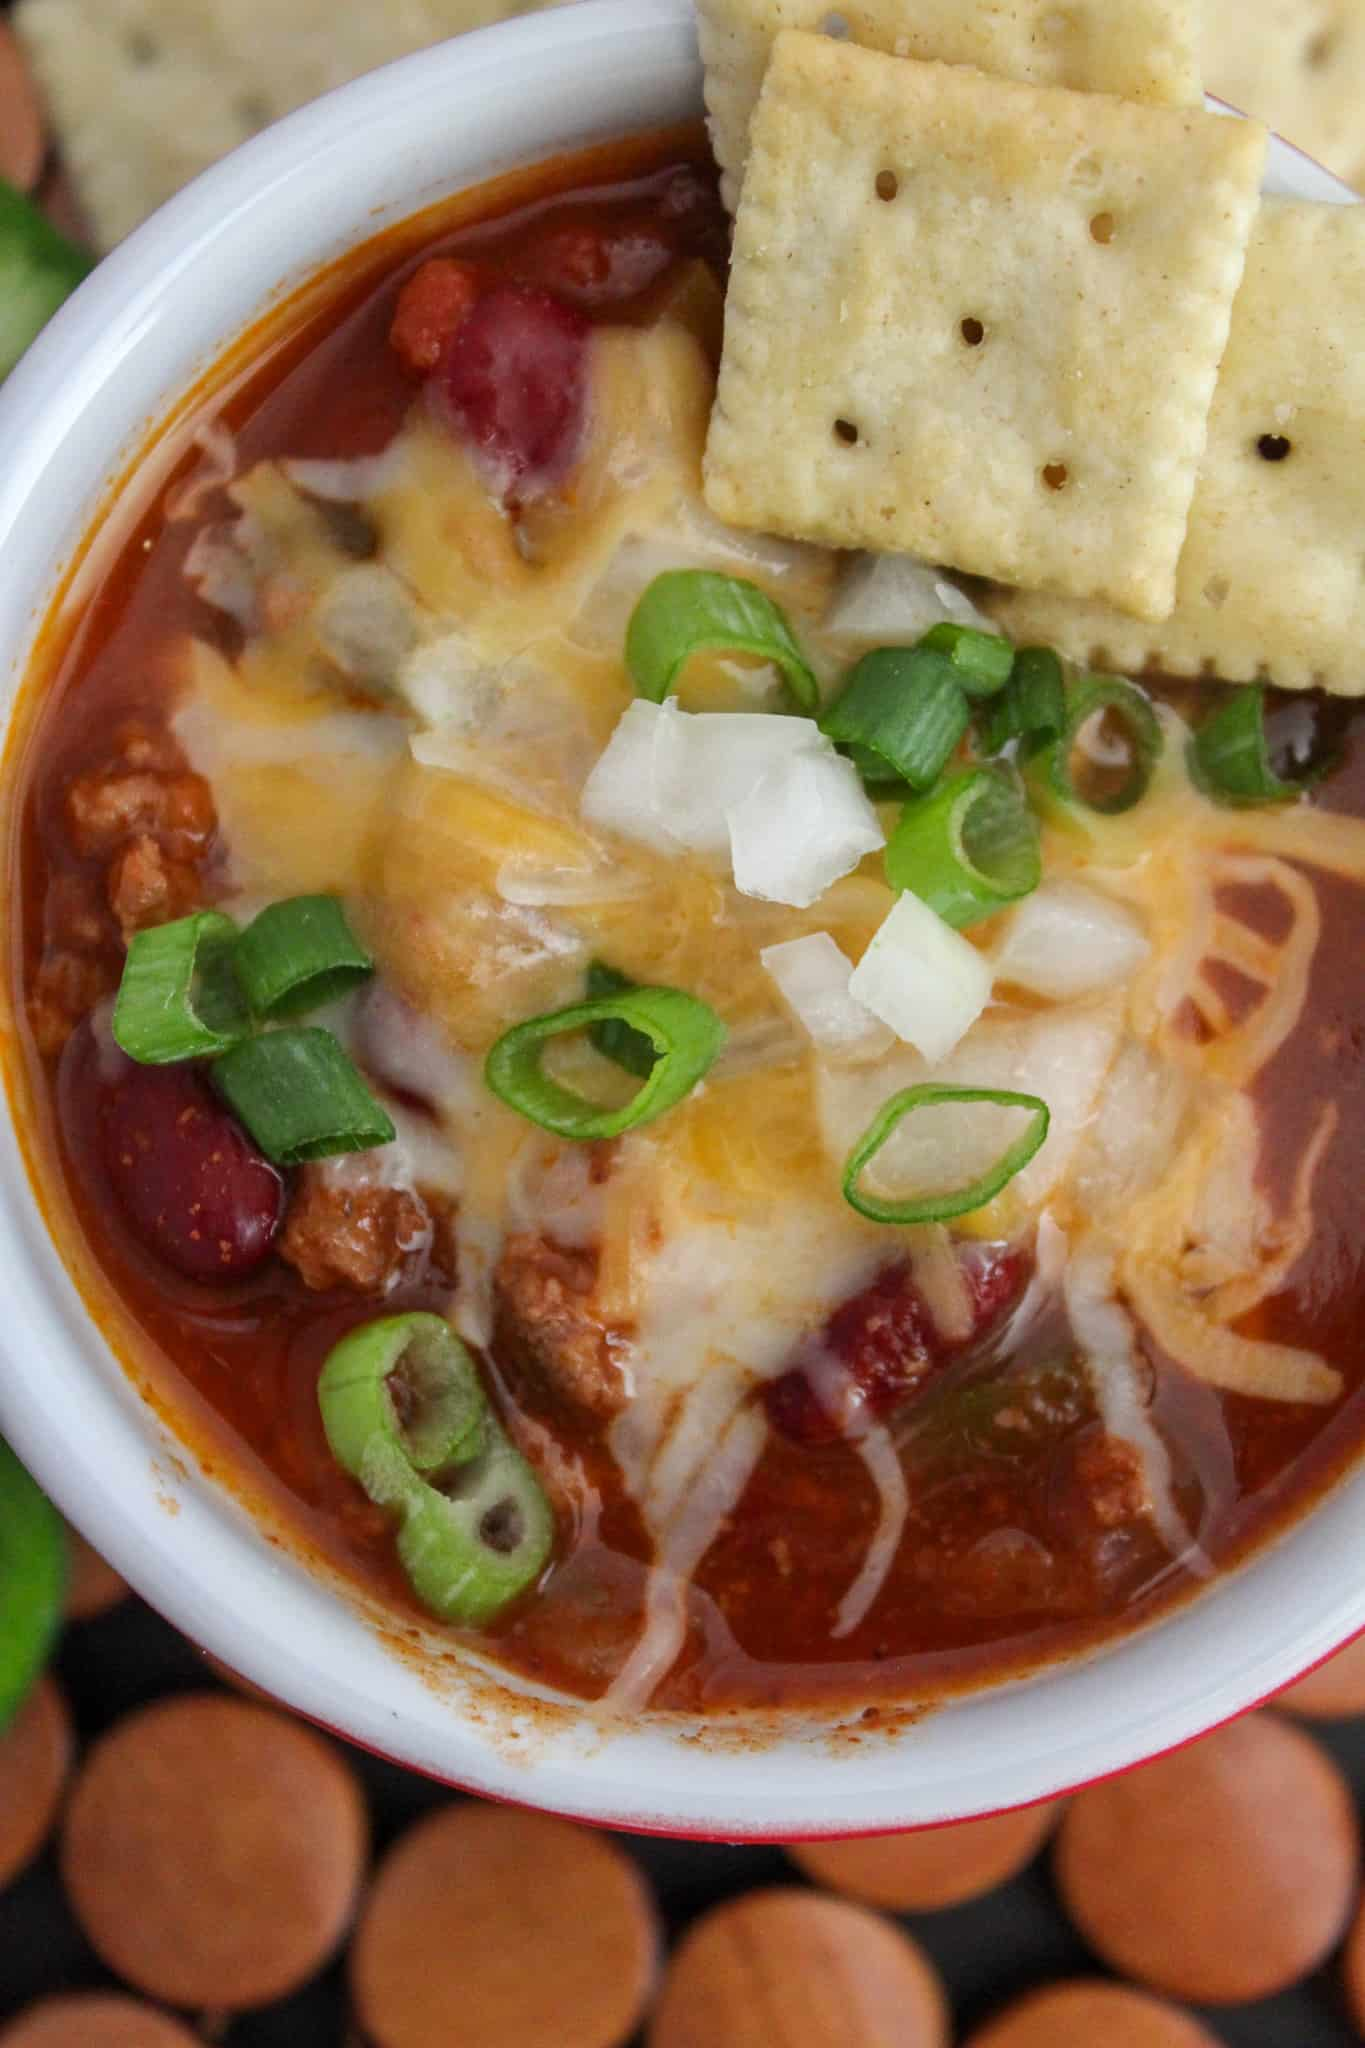 Instant Pot Chili With Ground Beef And Homemade Chili Seasoning A Pressure Cooker